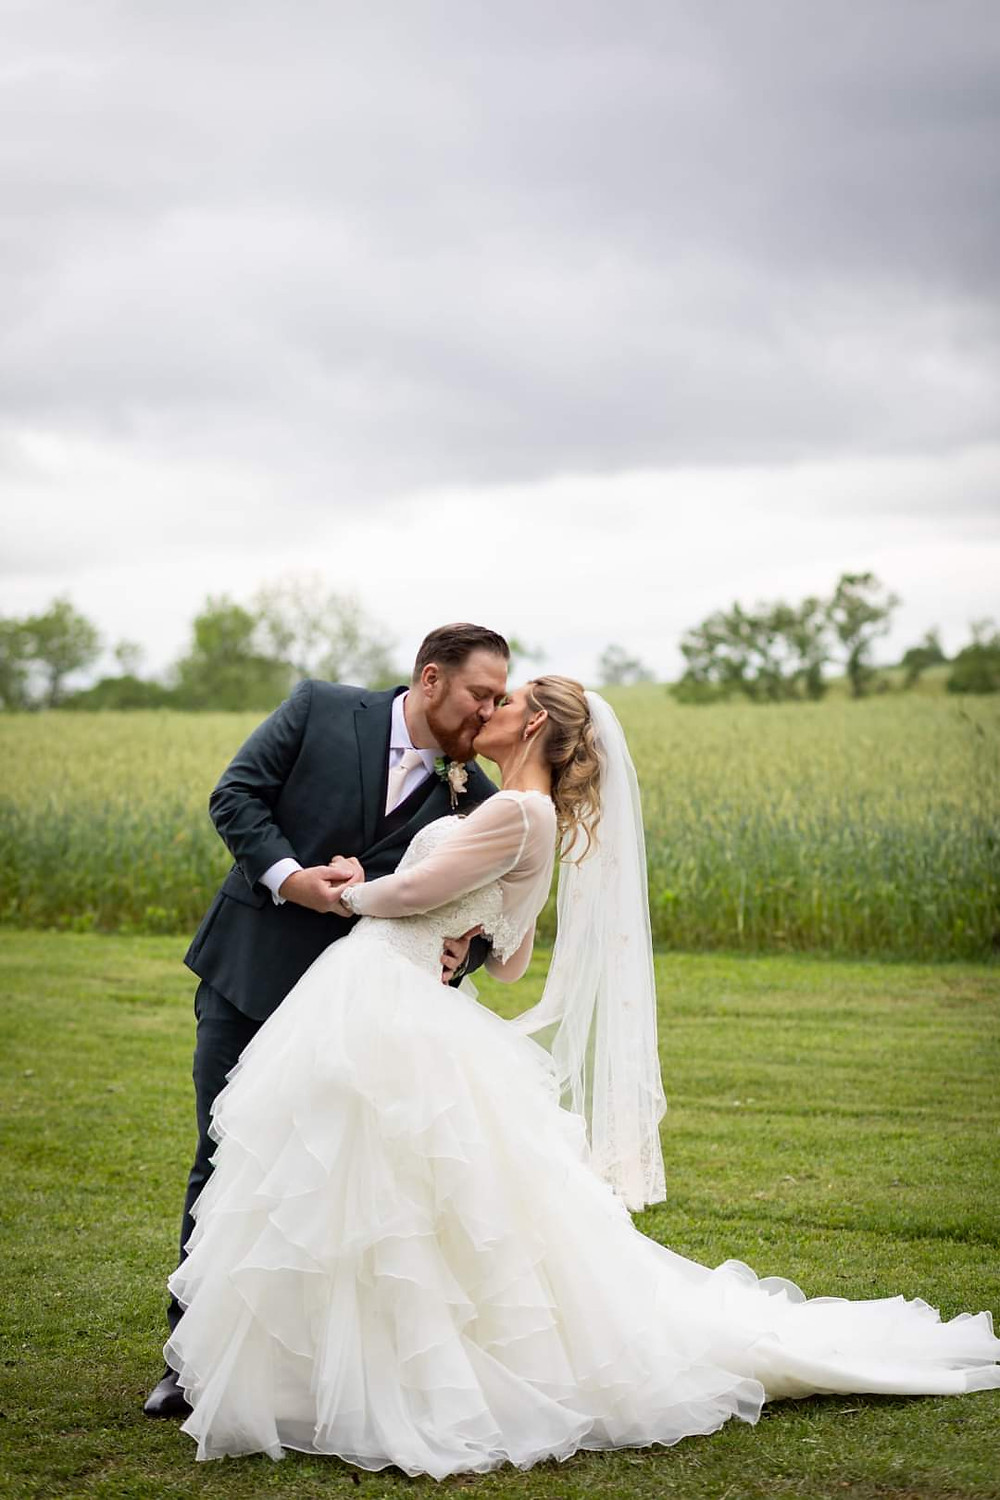 A bride and groom are kissing in front of a field of wheat.